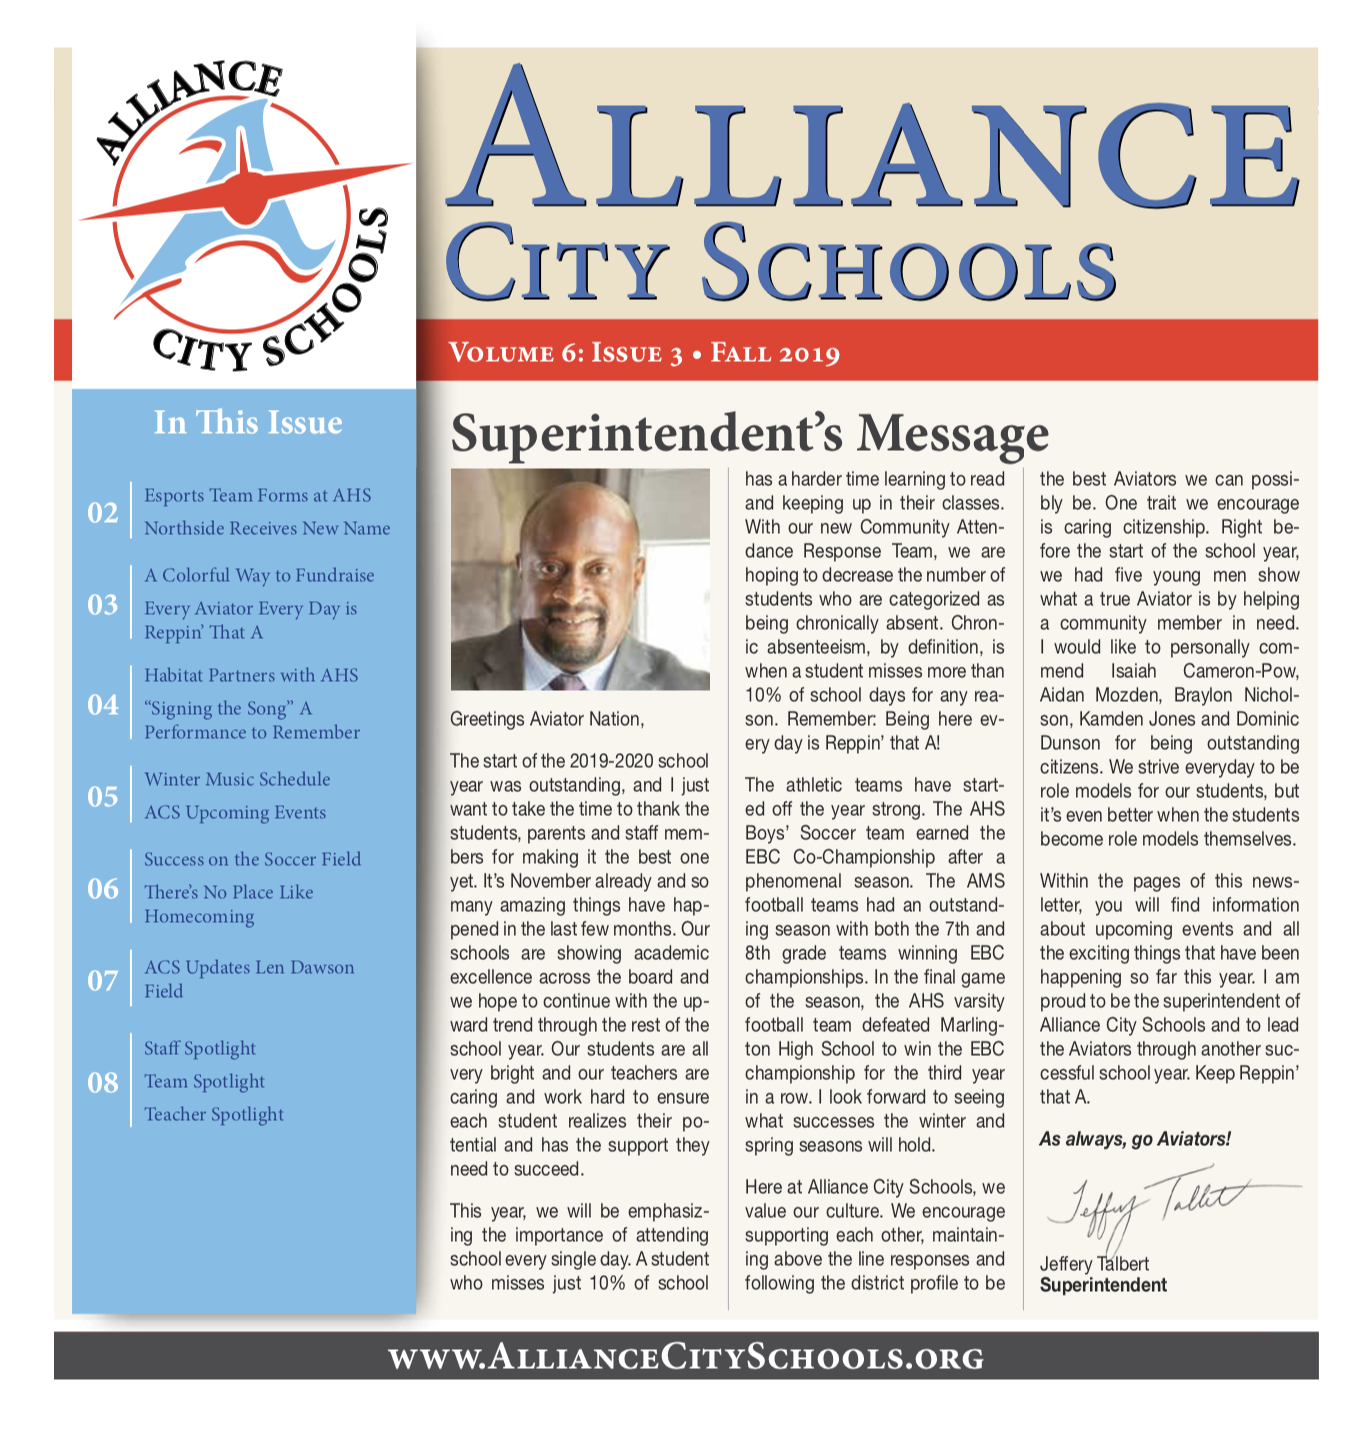 Alliance City Schools